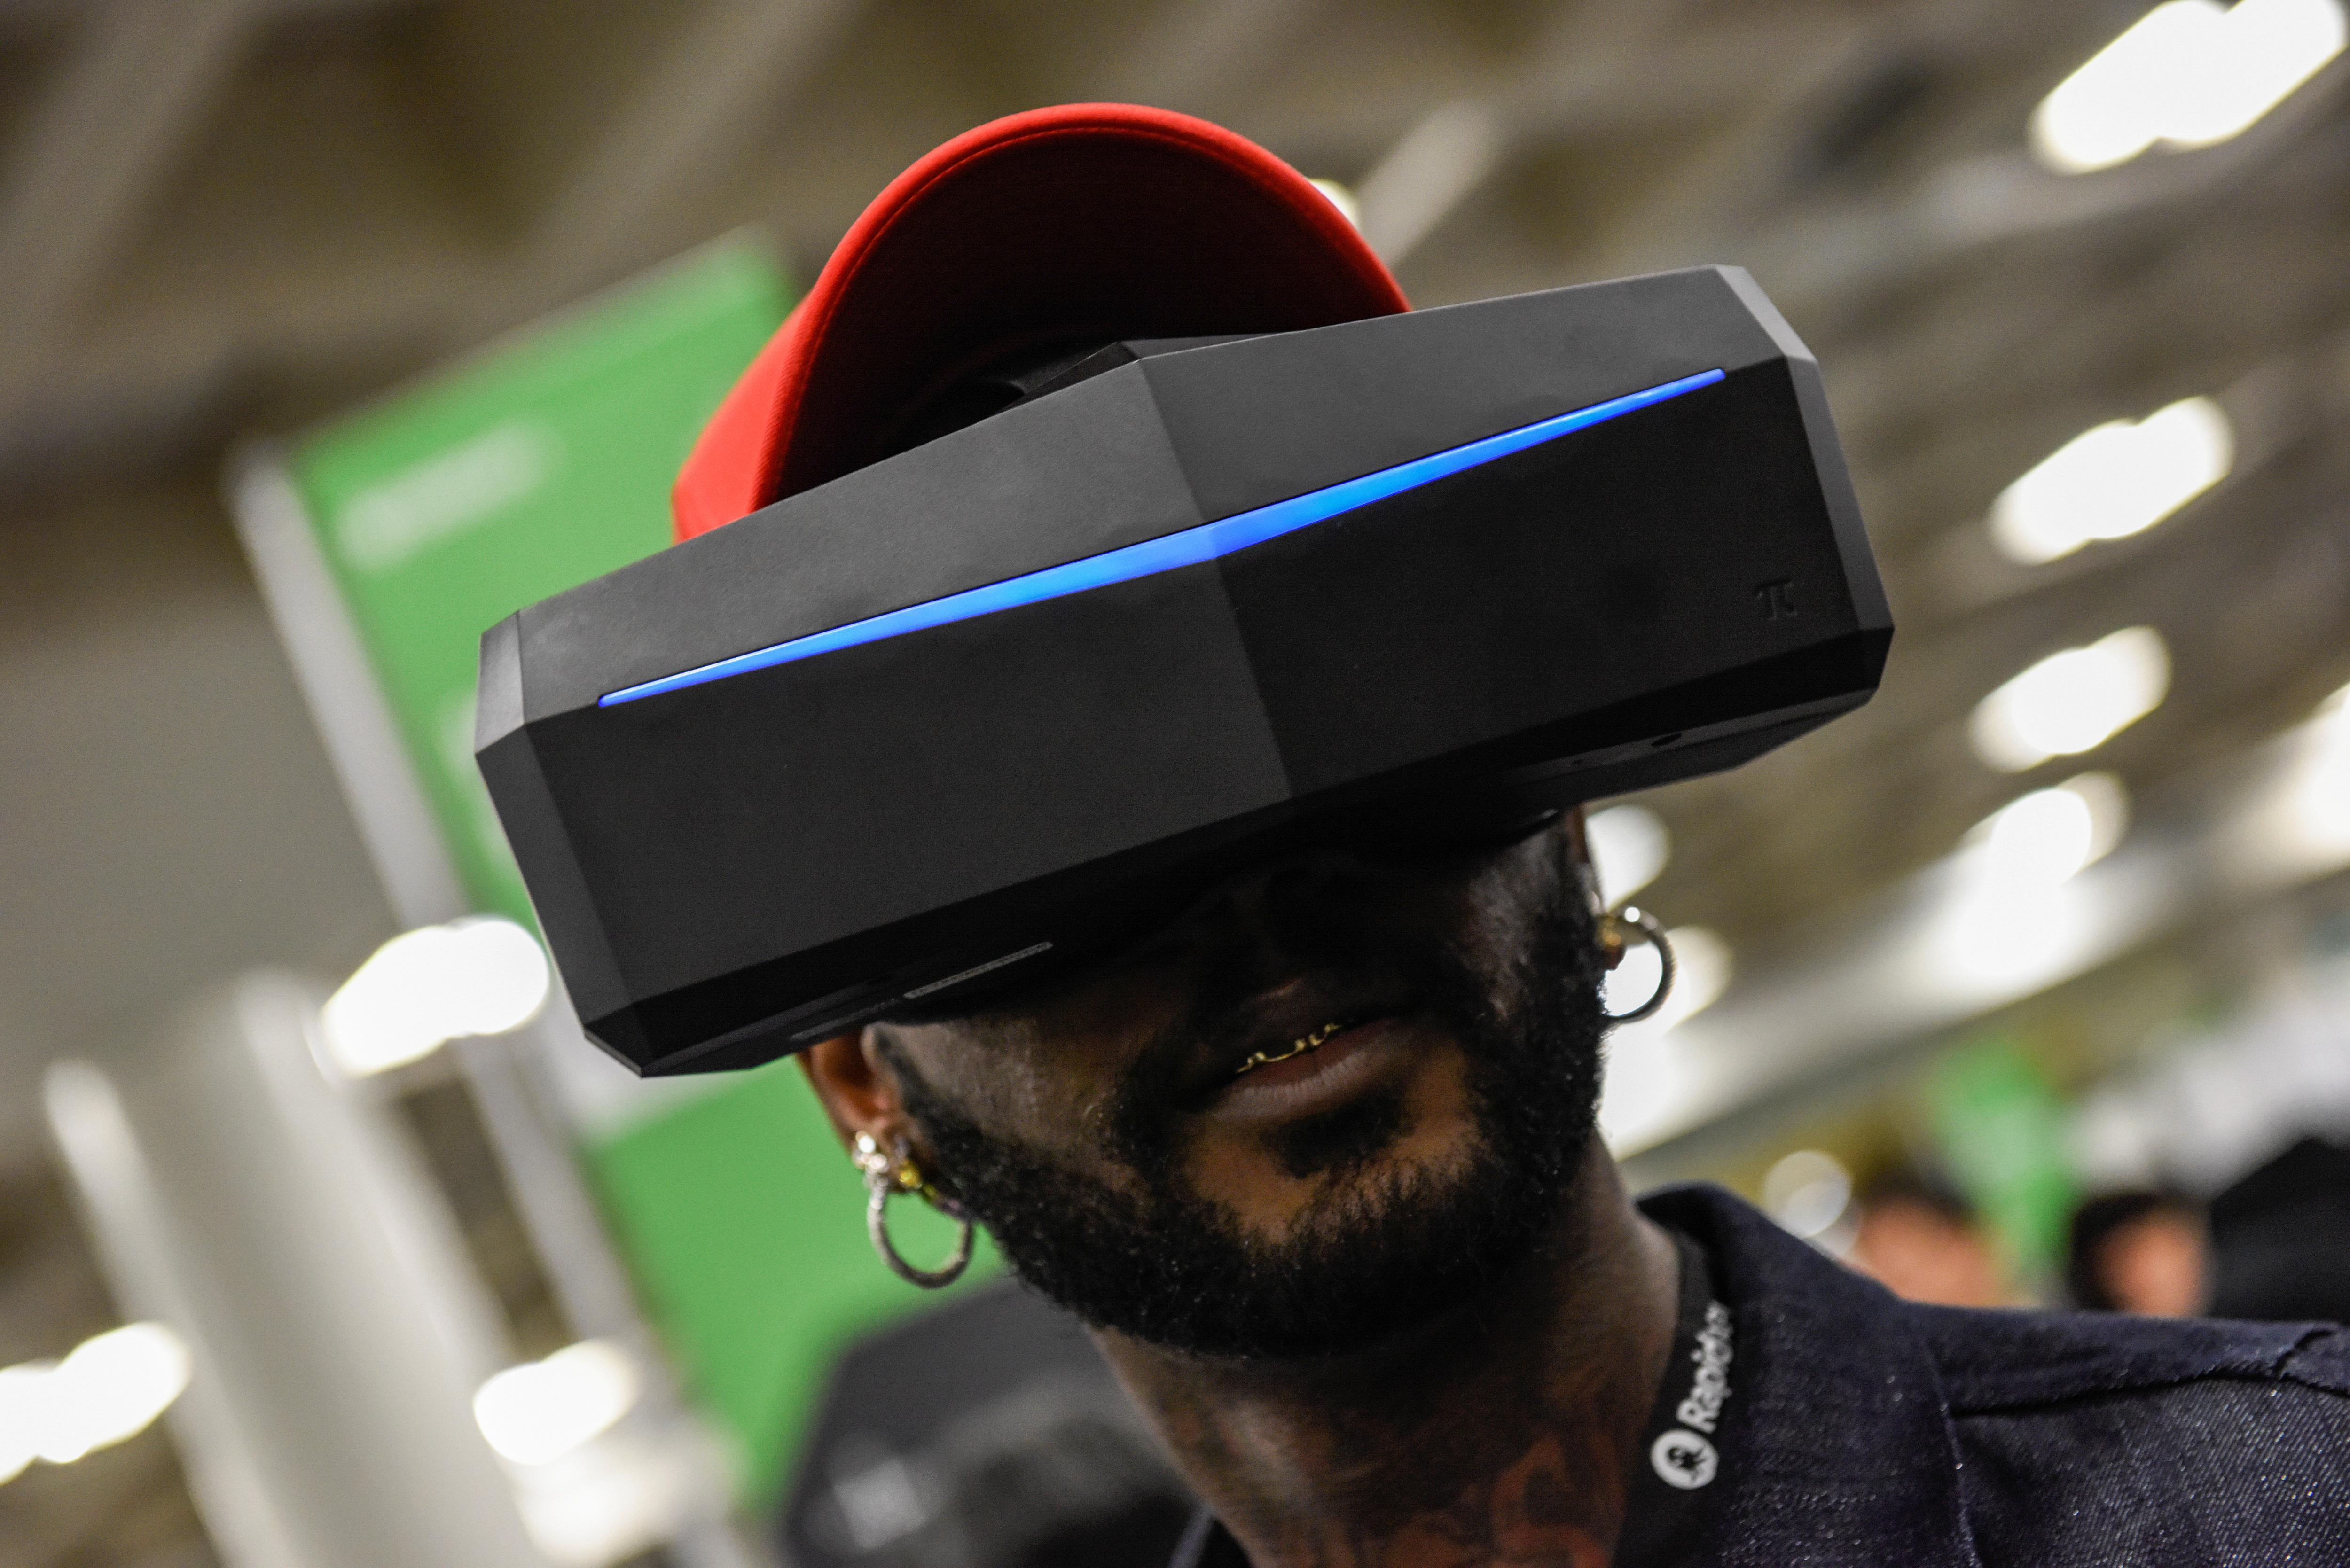 Why Apple could finally make virtual reality mainstream